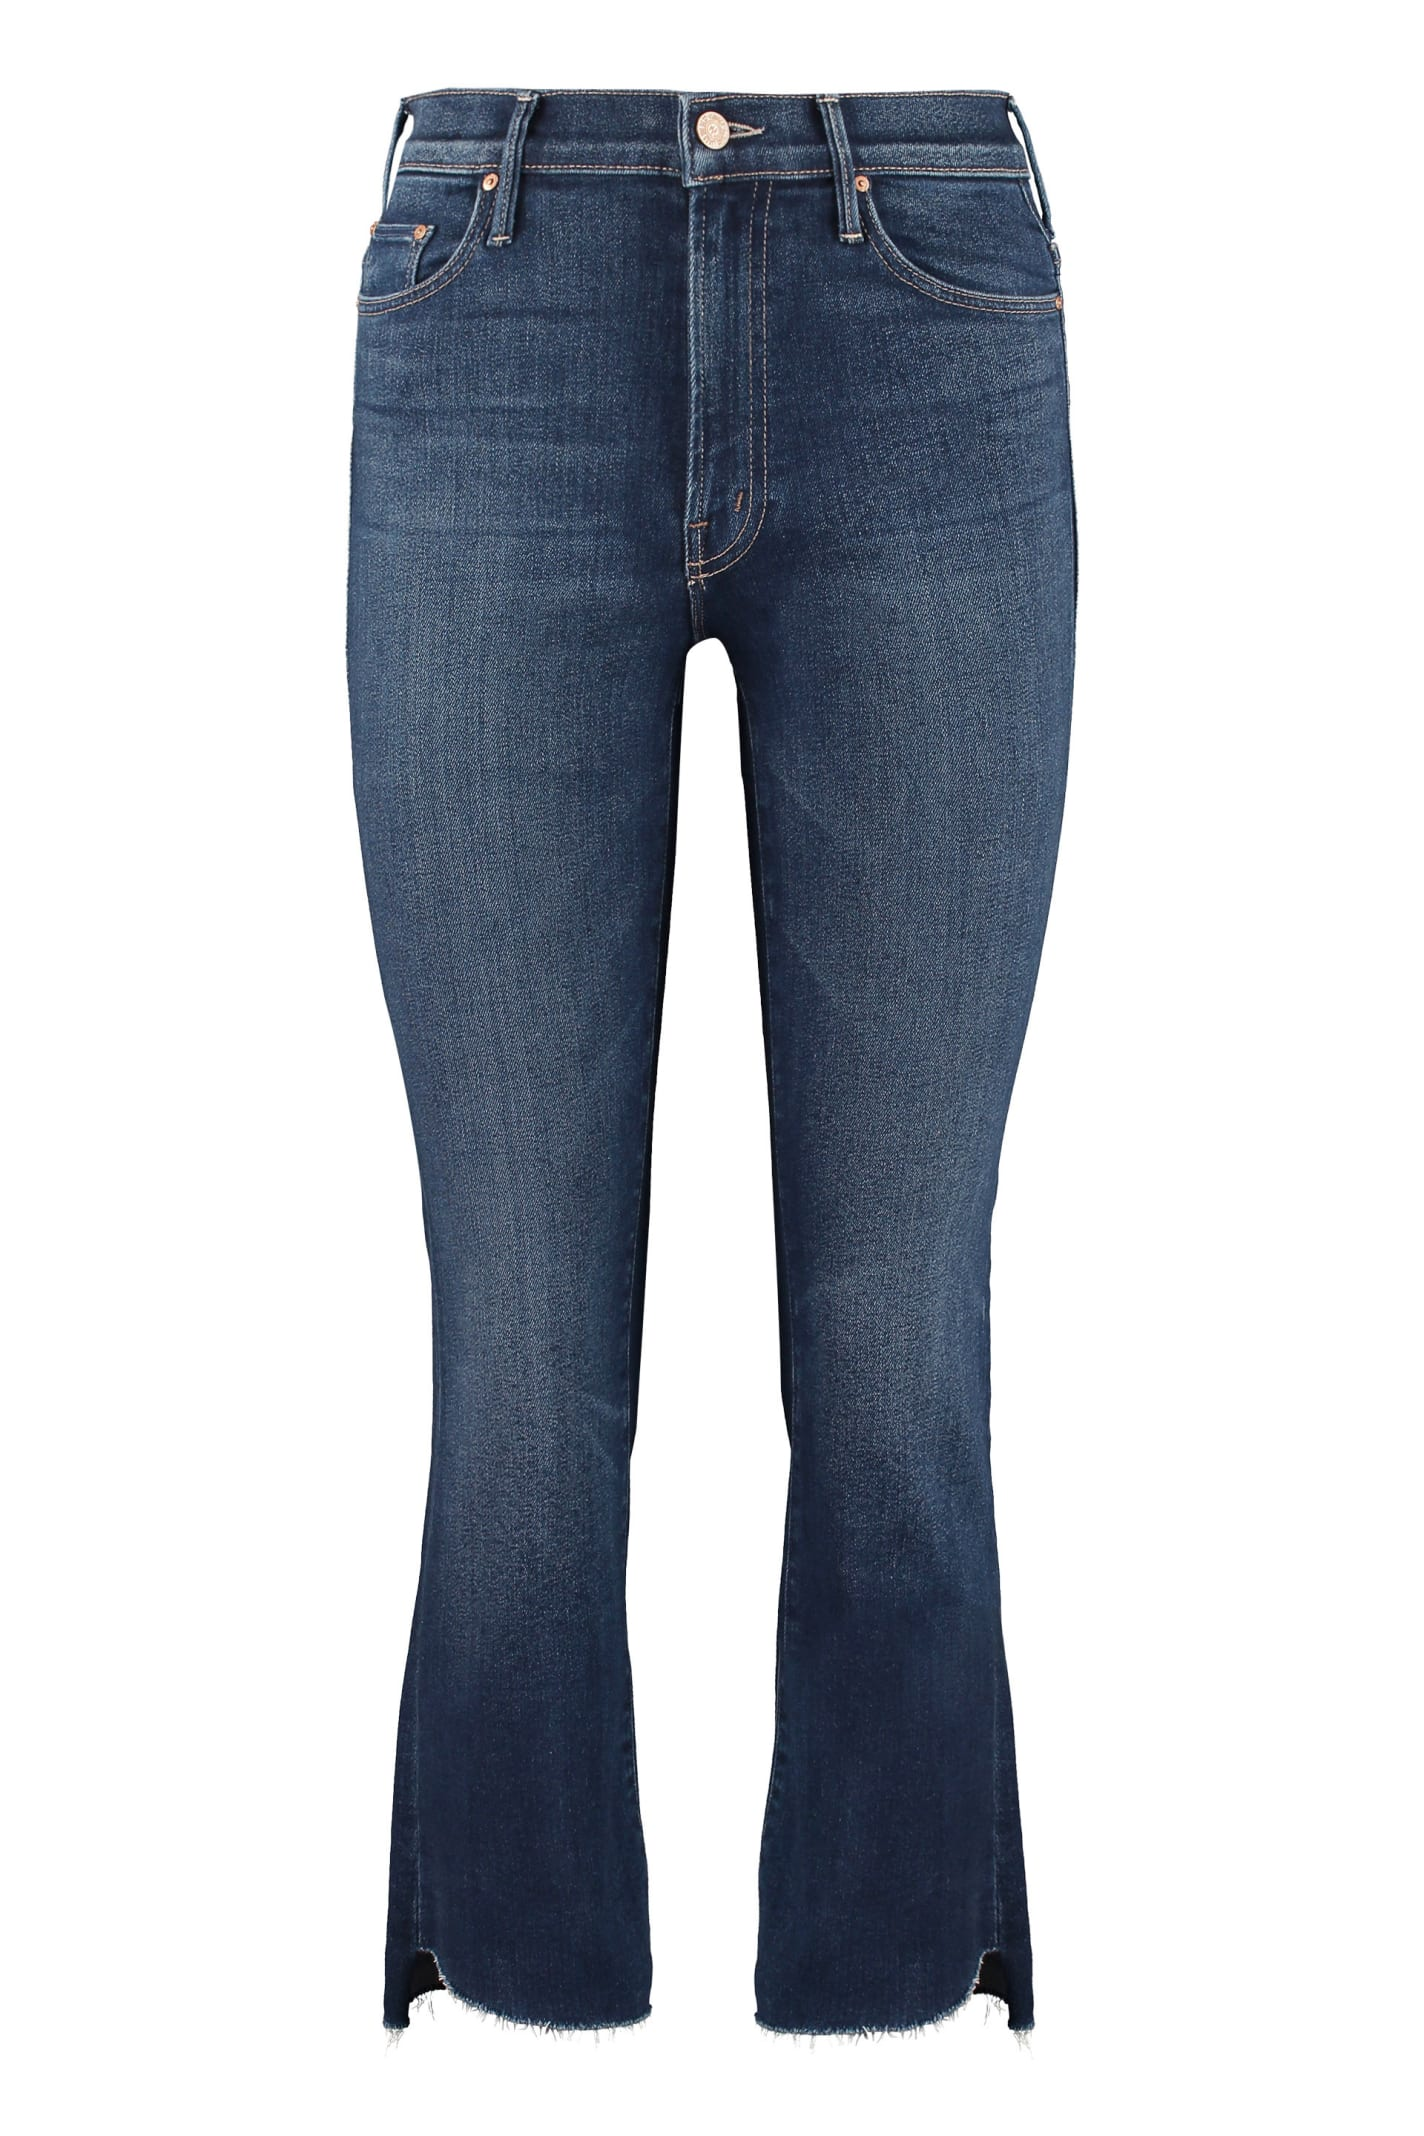 Mother Cottons INSIDER CROP STEP FRAY 5-POCKET JEANS